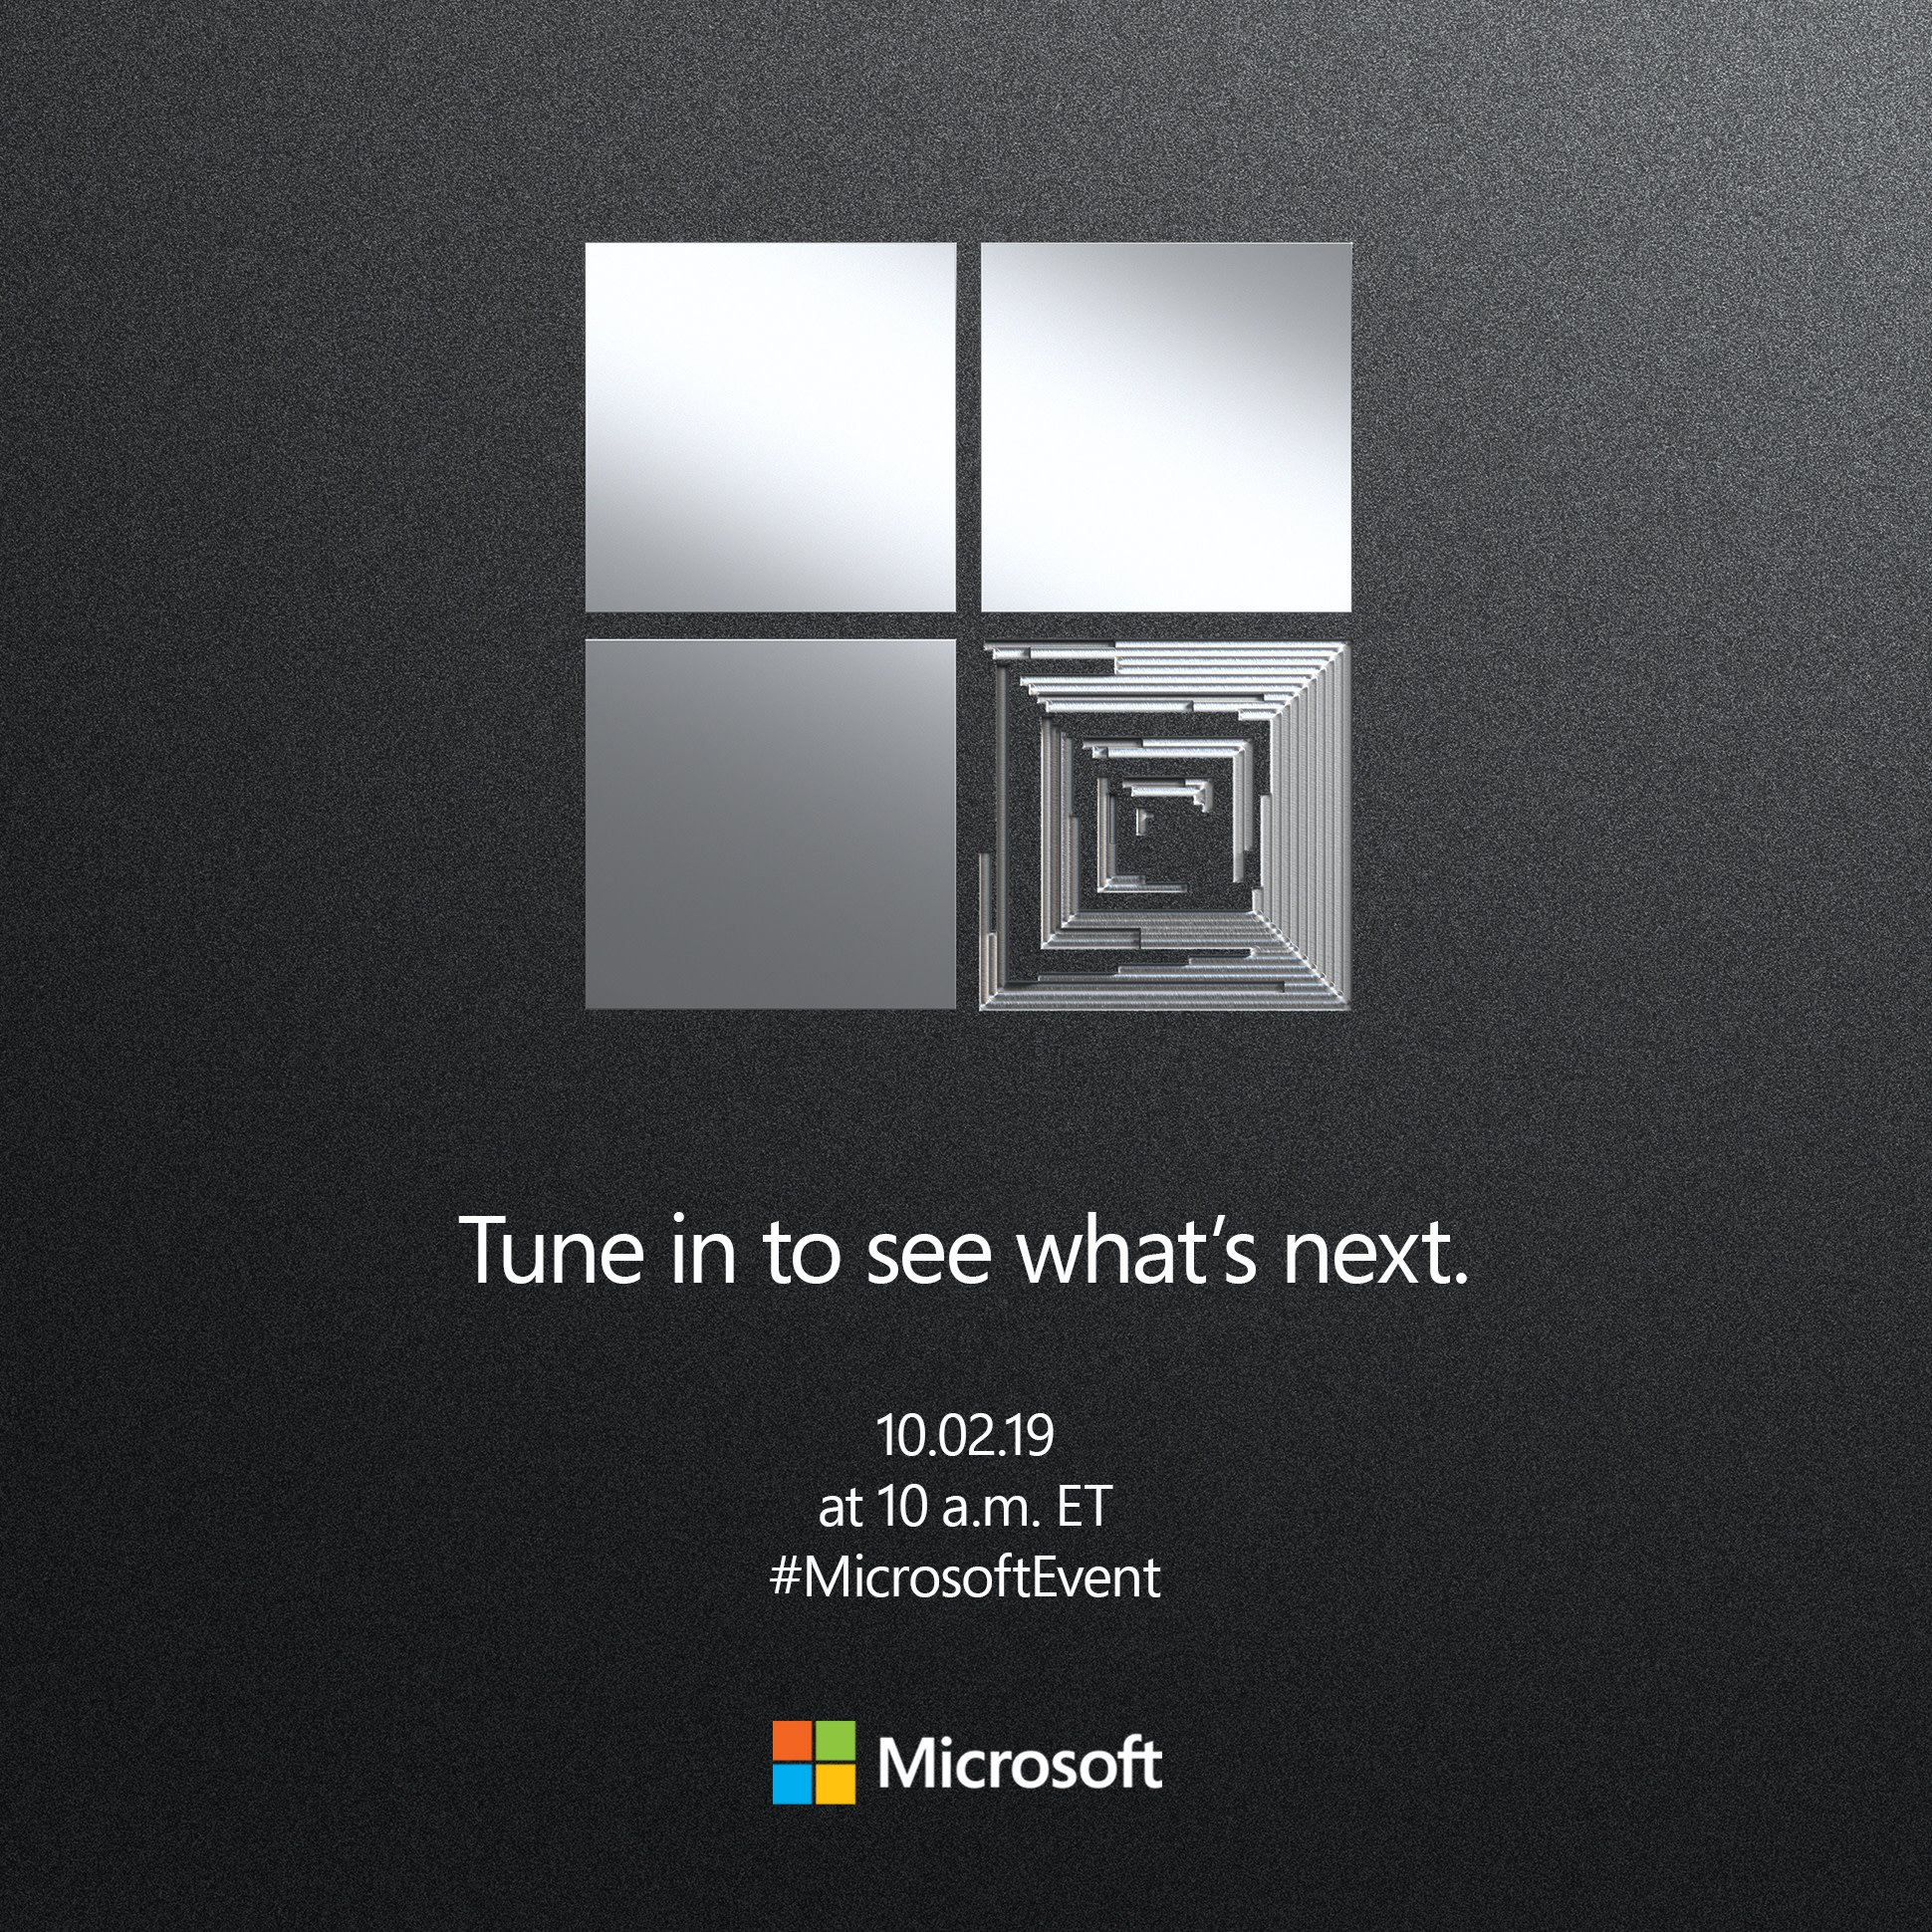 See what's next. Live stream the #MicrosoftEvent right here on Twitter 10.2, 10am ET.